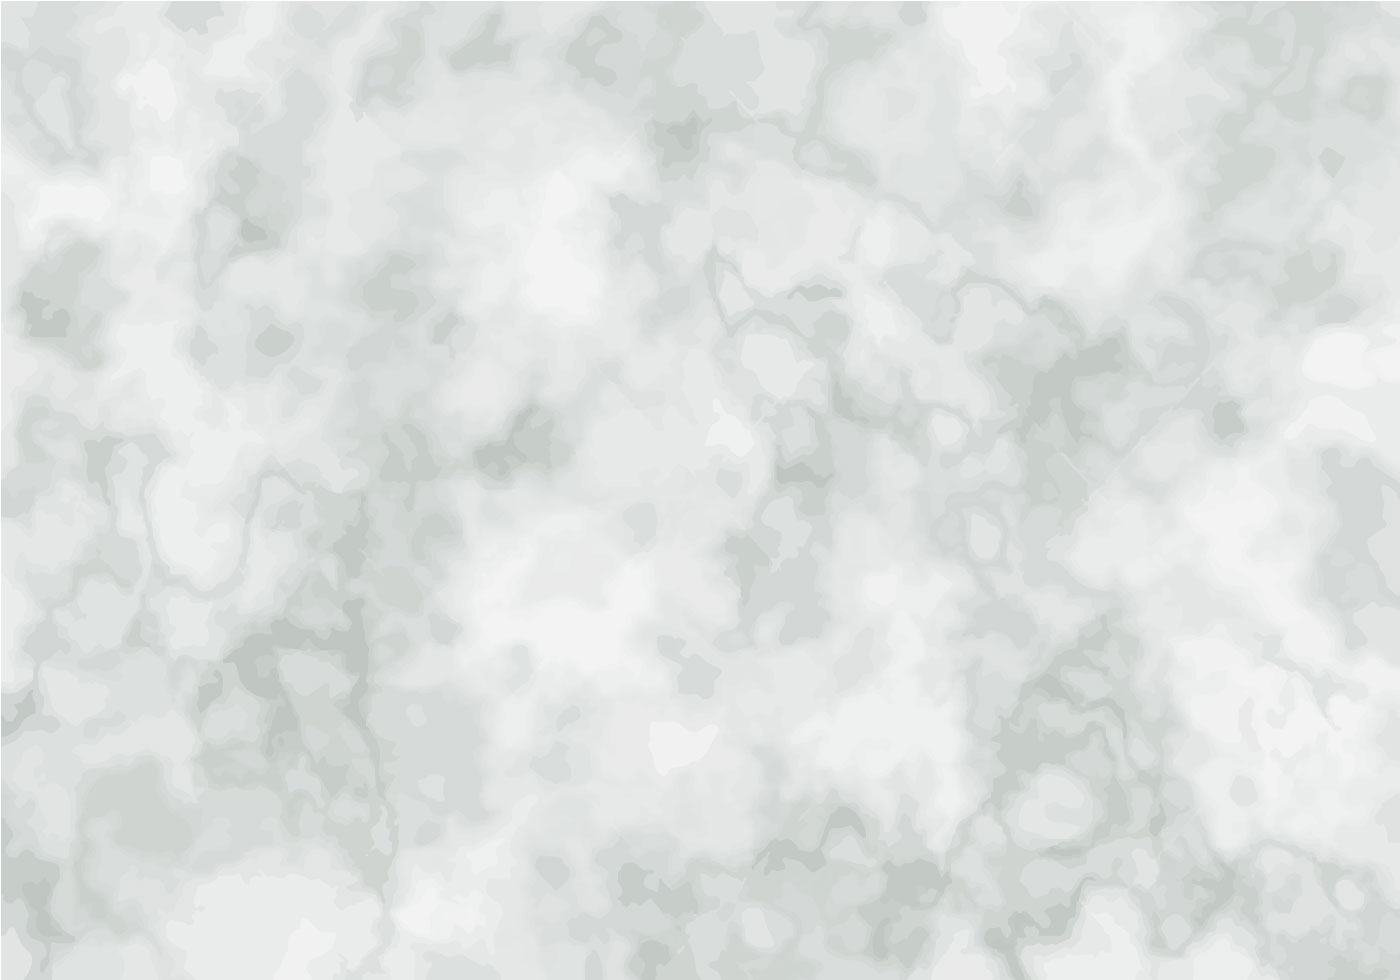 Marble Background Vector - Download Free Vector Art, Stock Graphics & Images